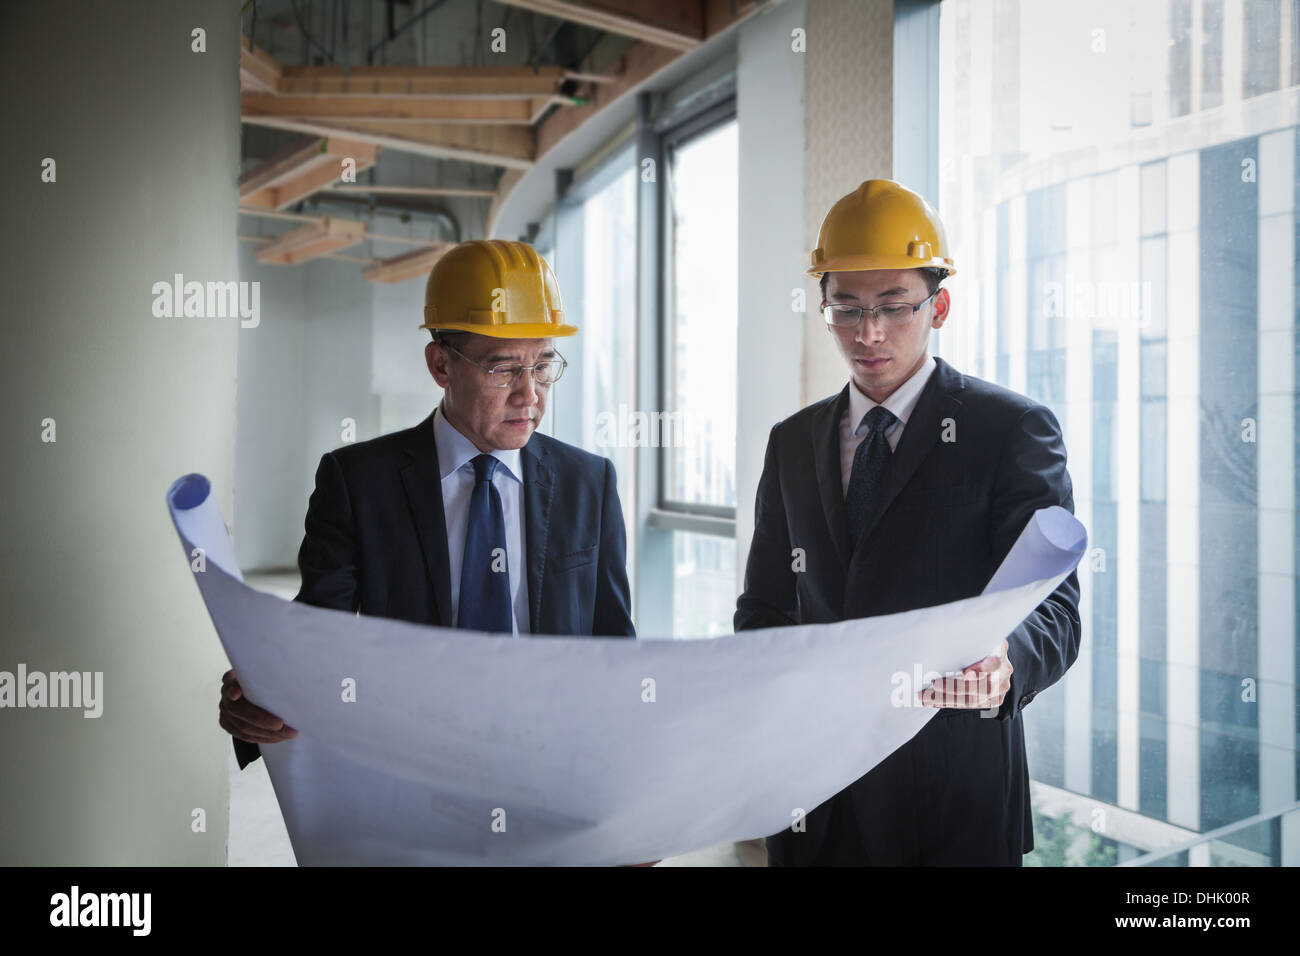 Two architects in hardhats examining a blueprint in an office building - Stock Image